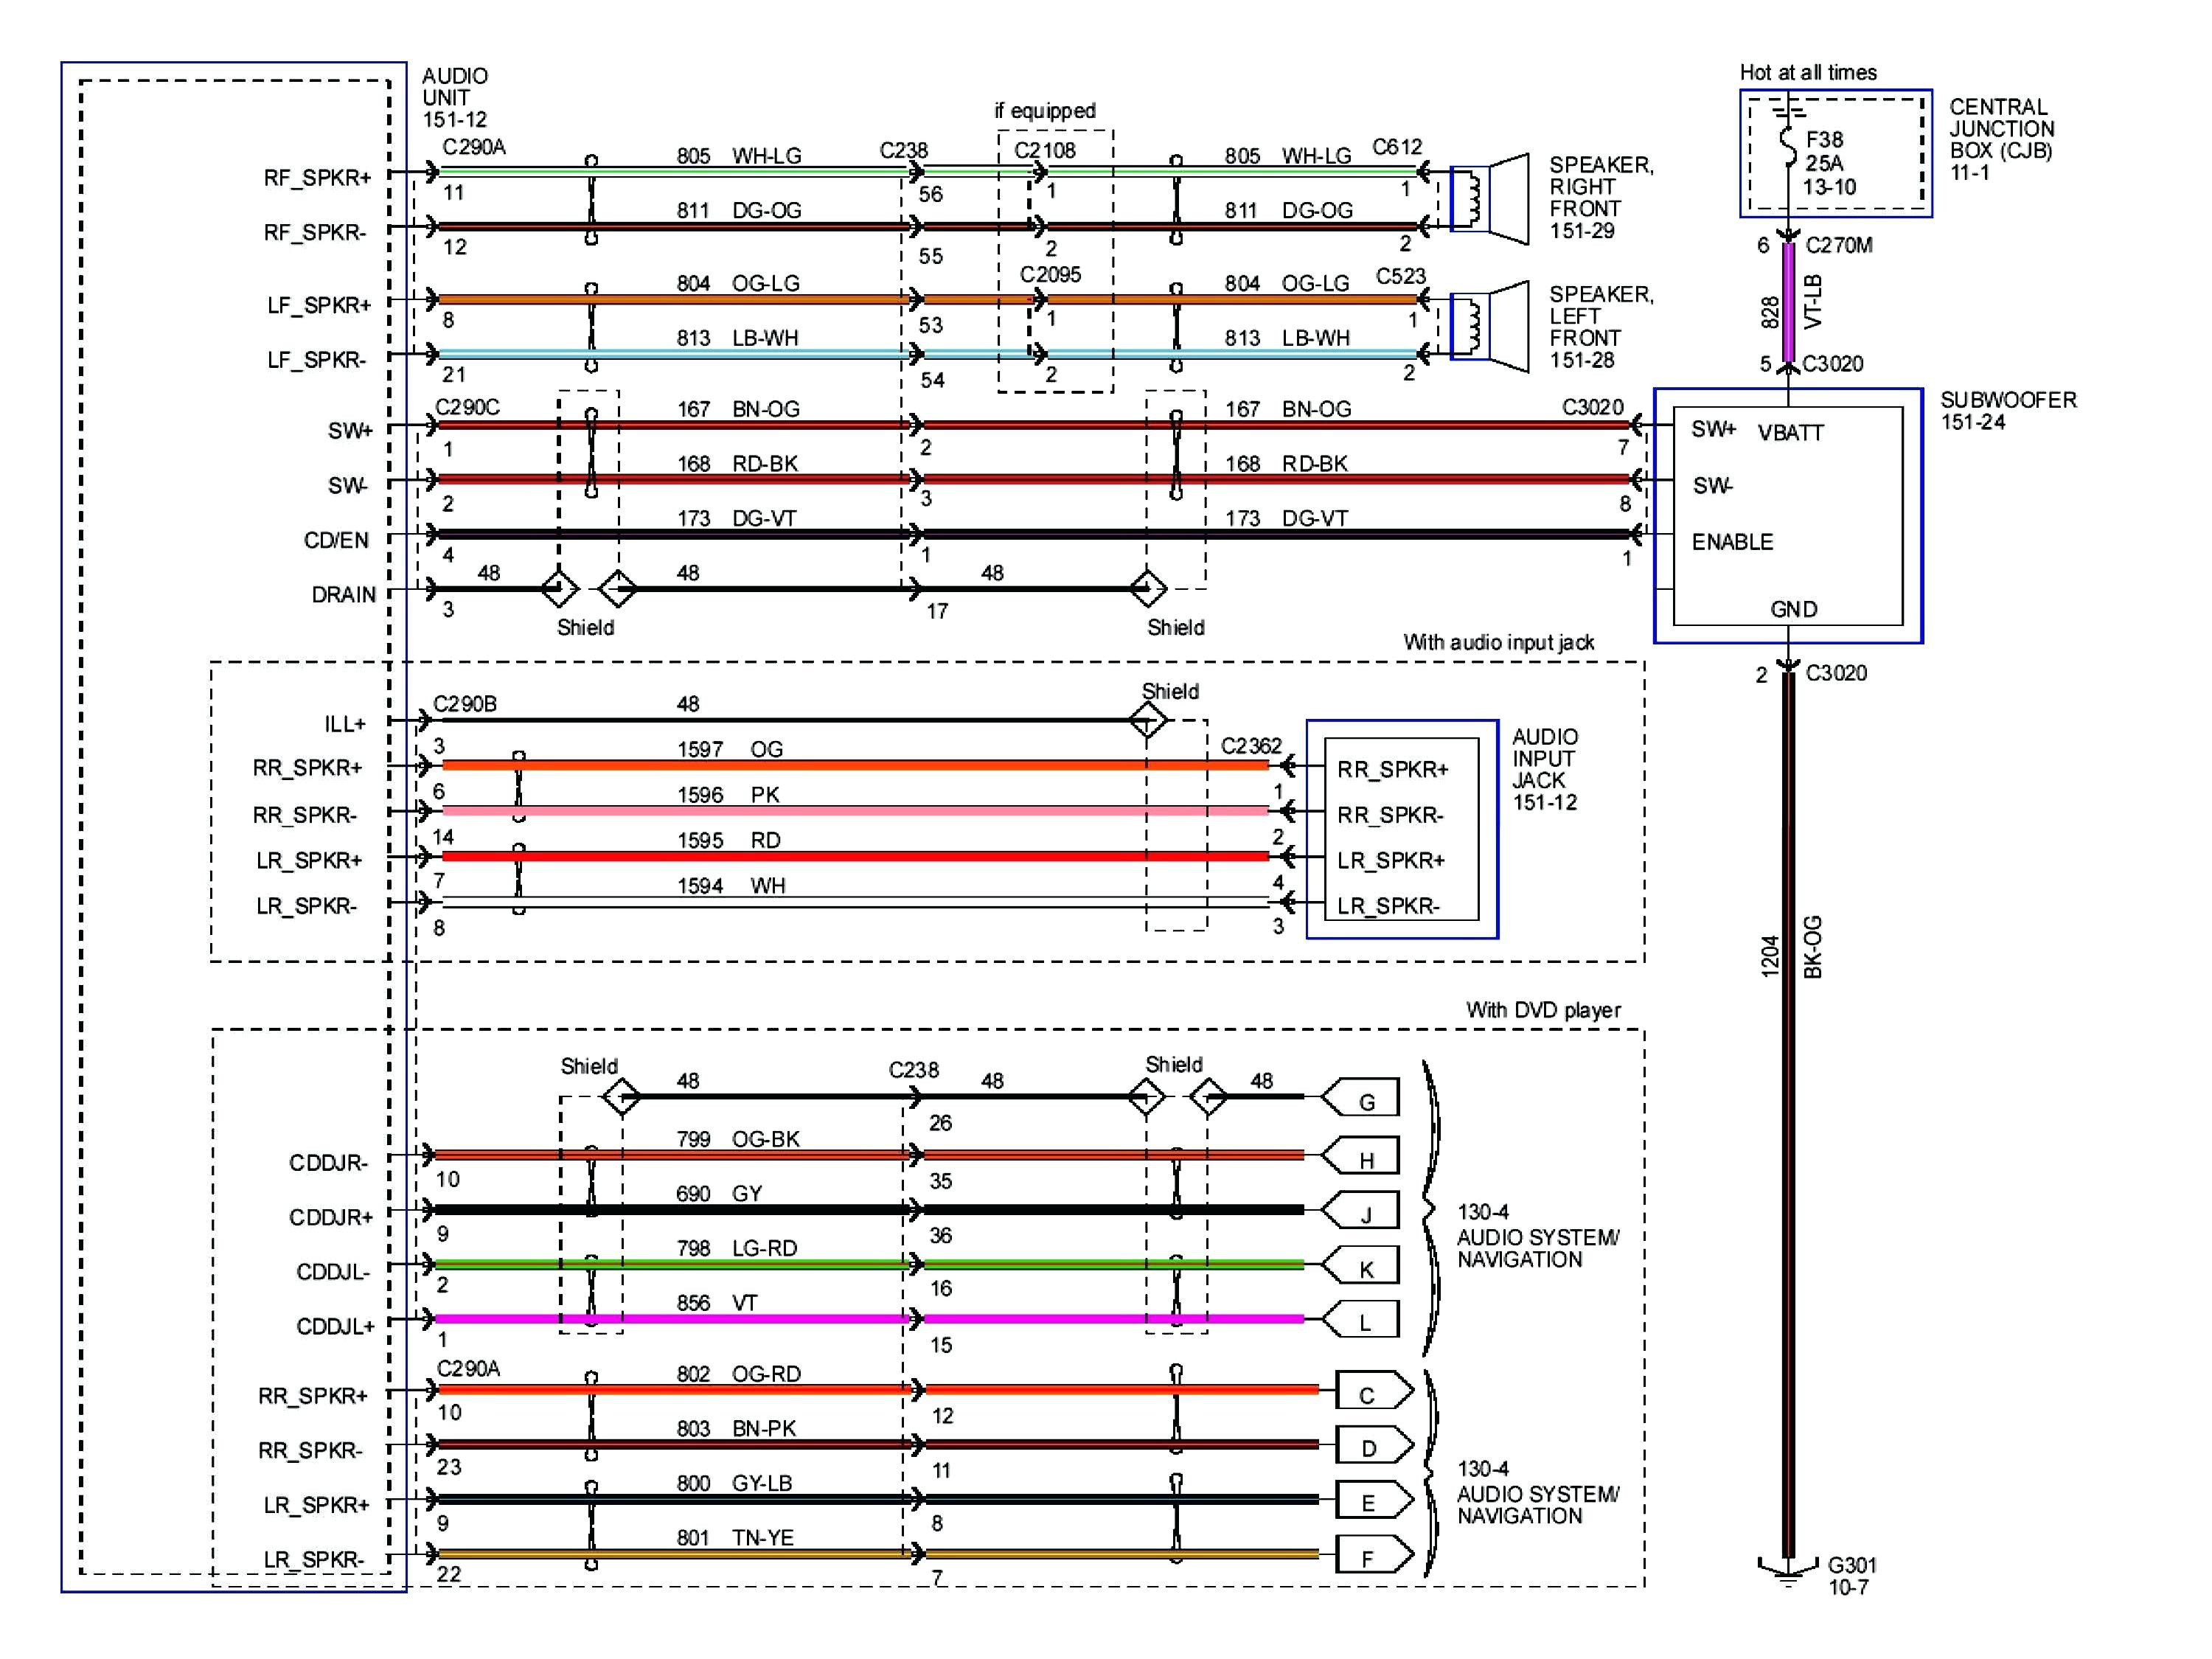 2008 ford f 150 stereo wiring diagram 2008 ford f150 stereo wiring diagram wiring diagrams blog  2008 ford f150 stereo wiring diagram